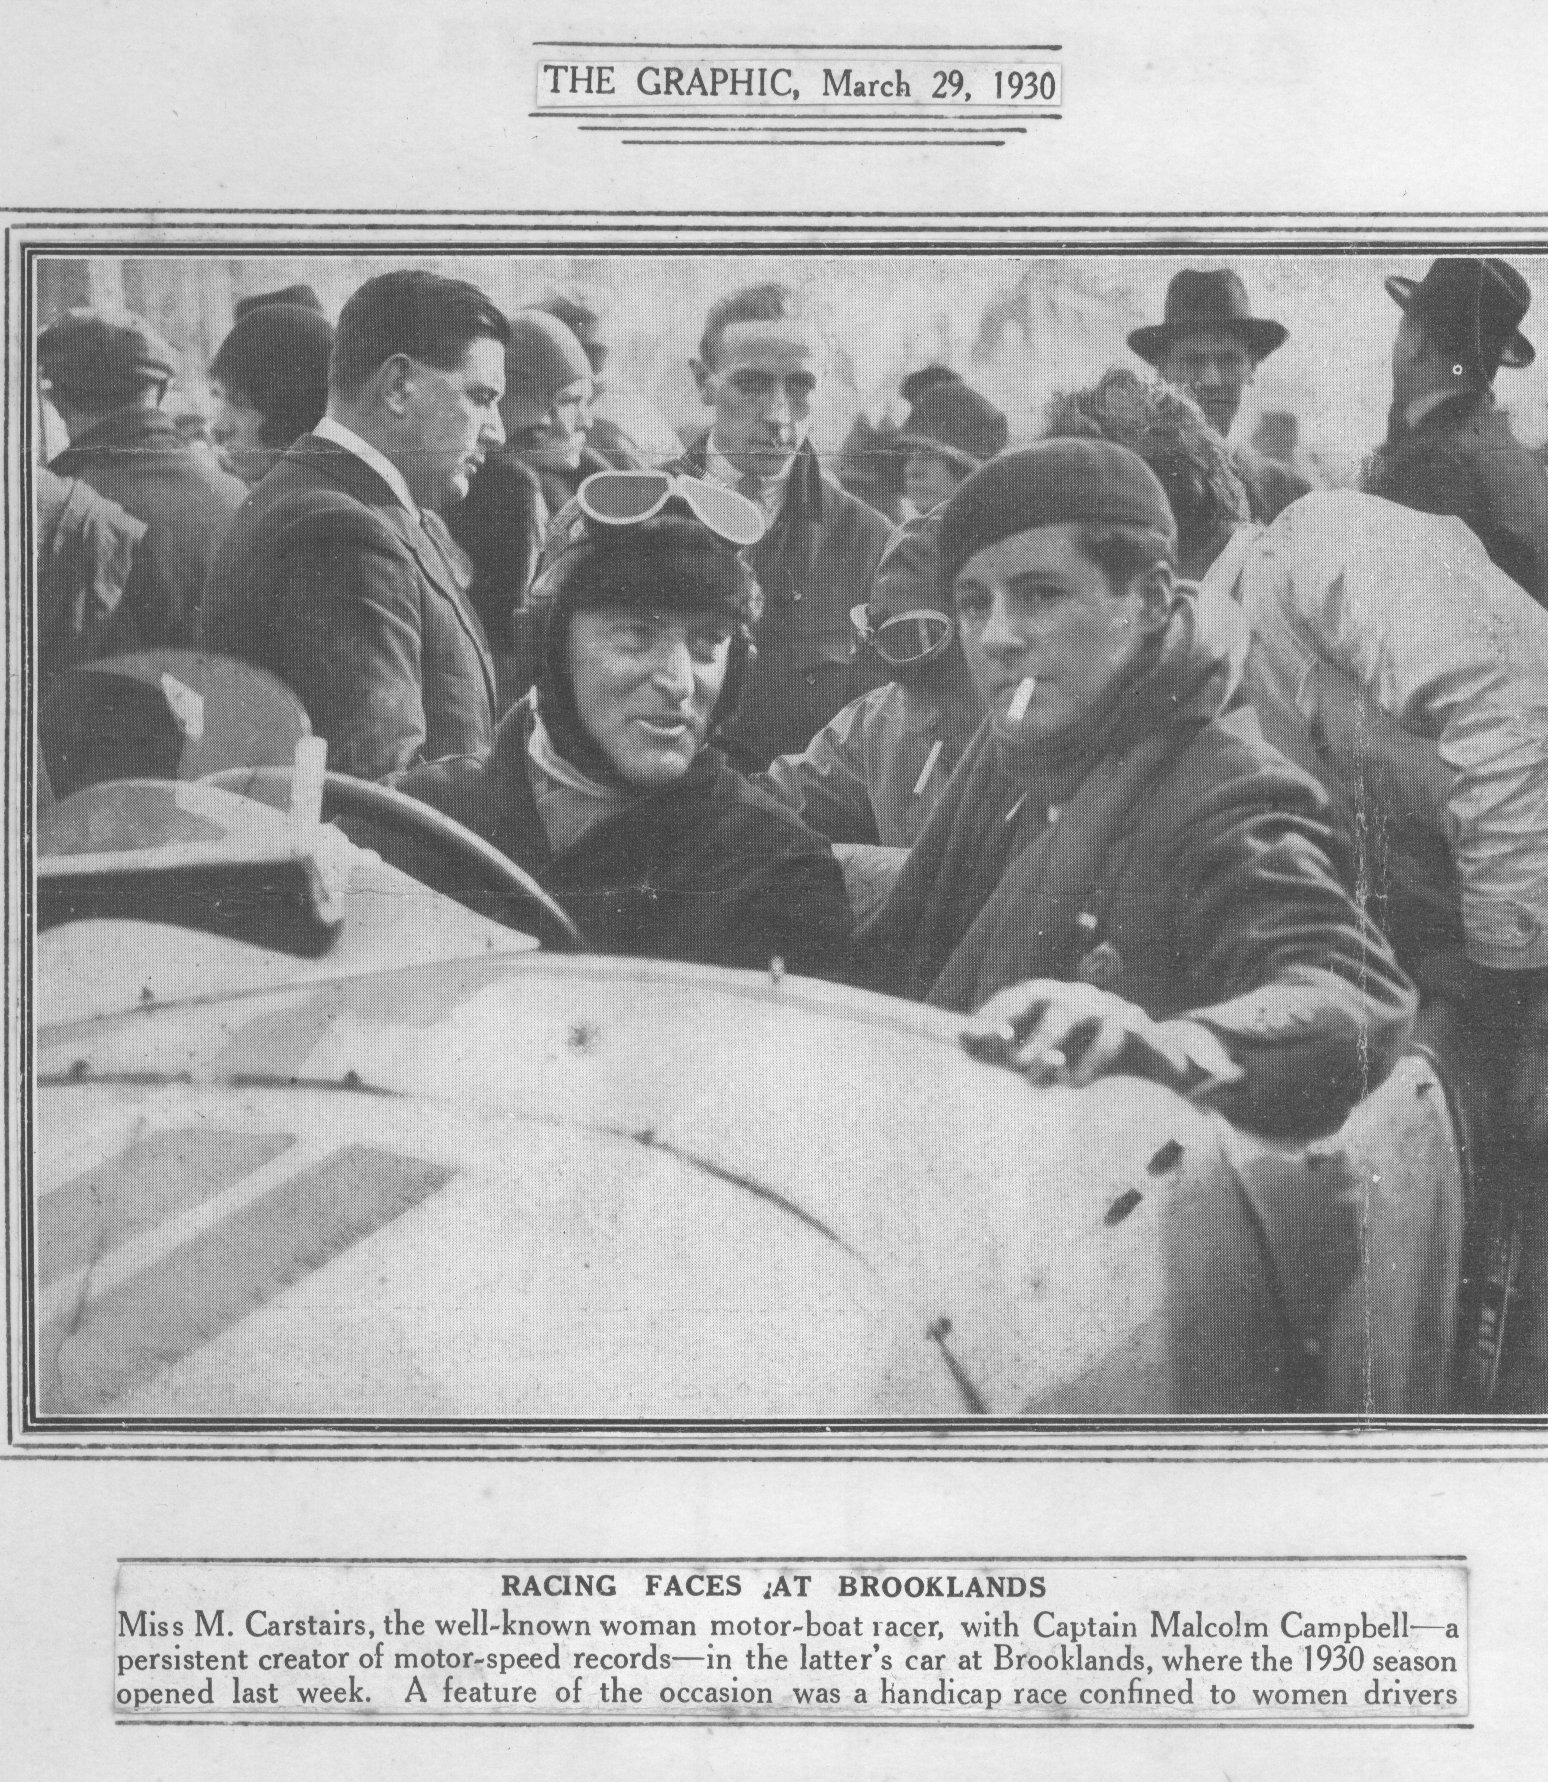 Joe Carstairs with Capt Malcolm Campbell, at Brooklands, March 1930